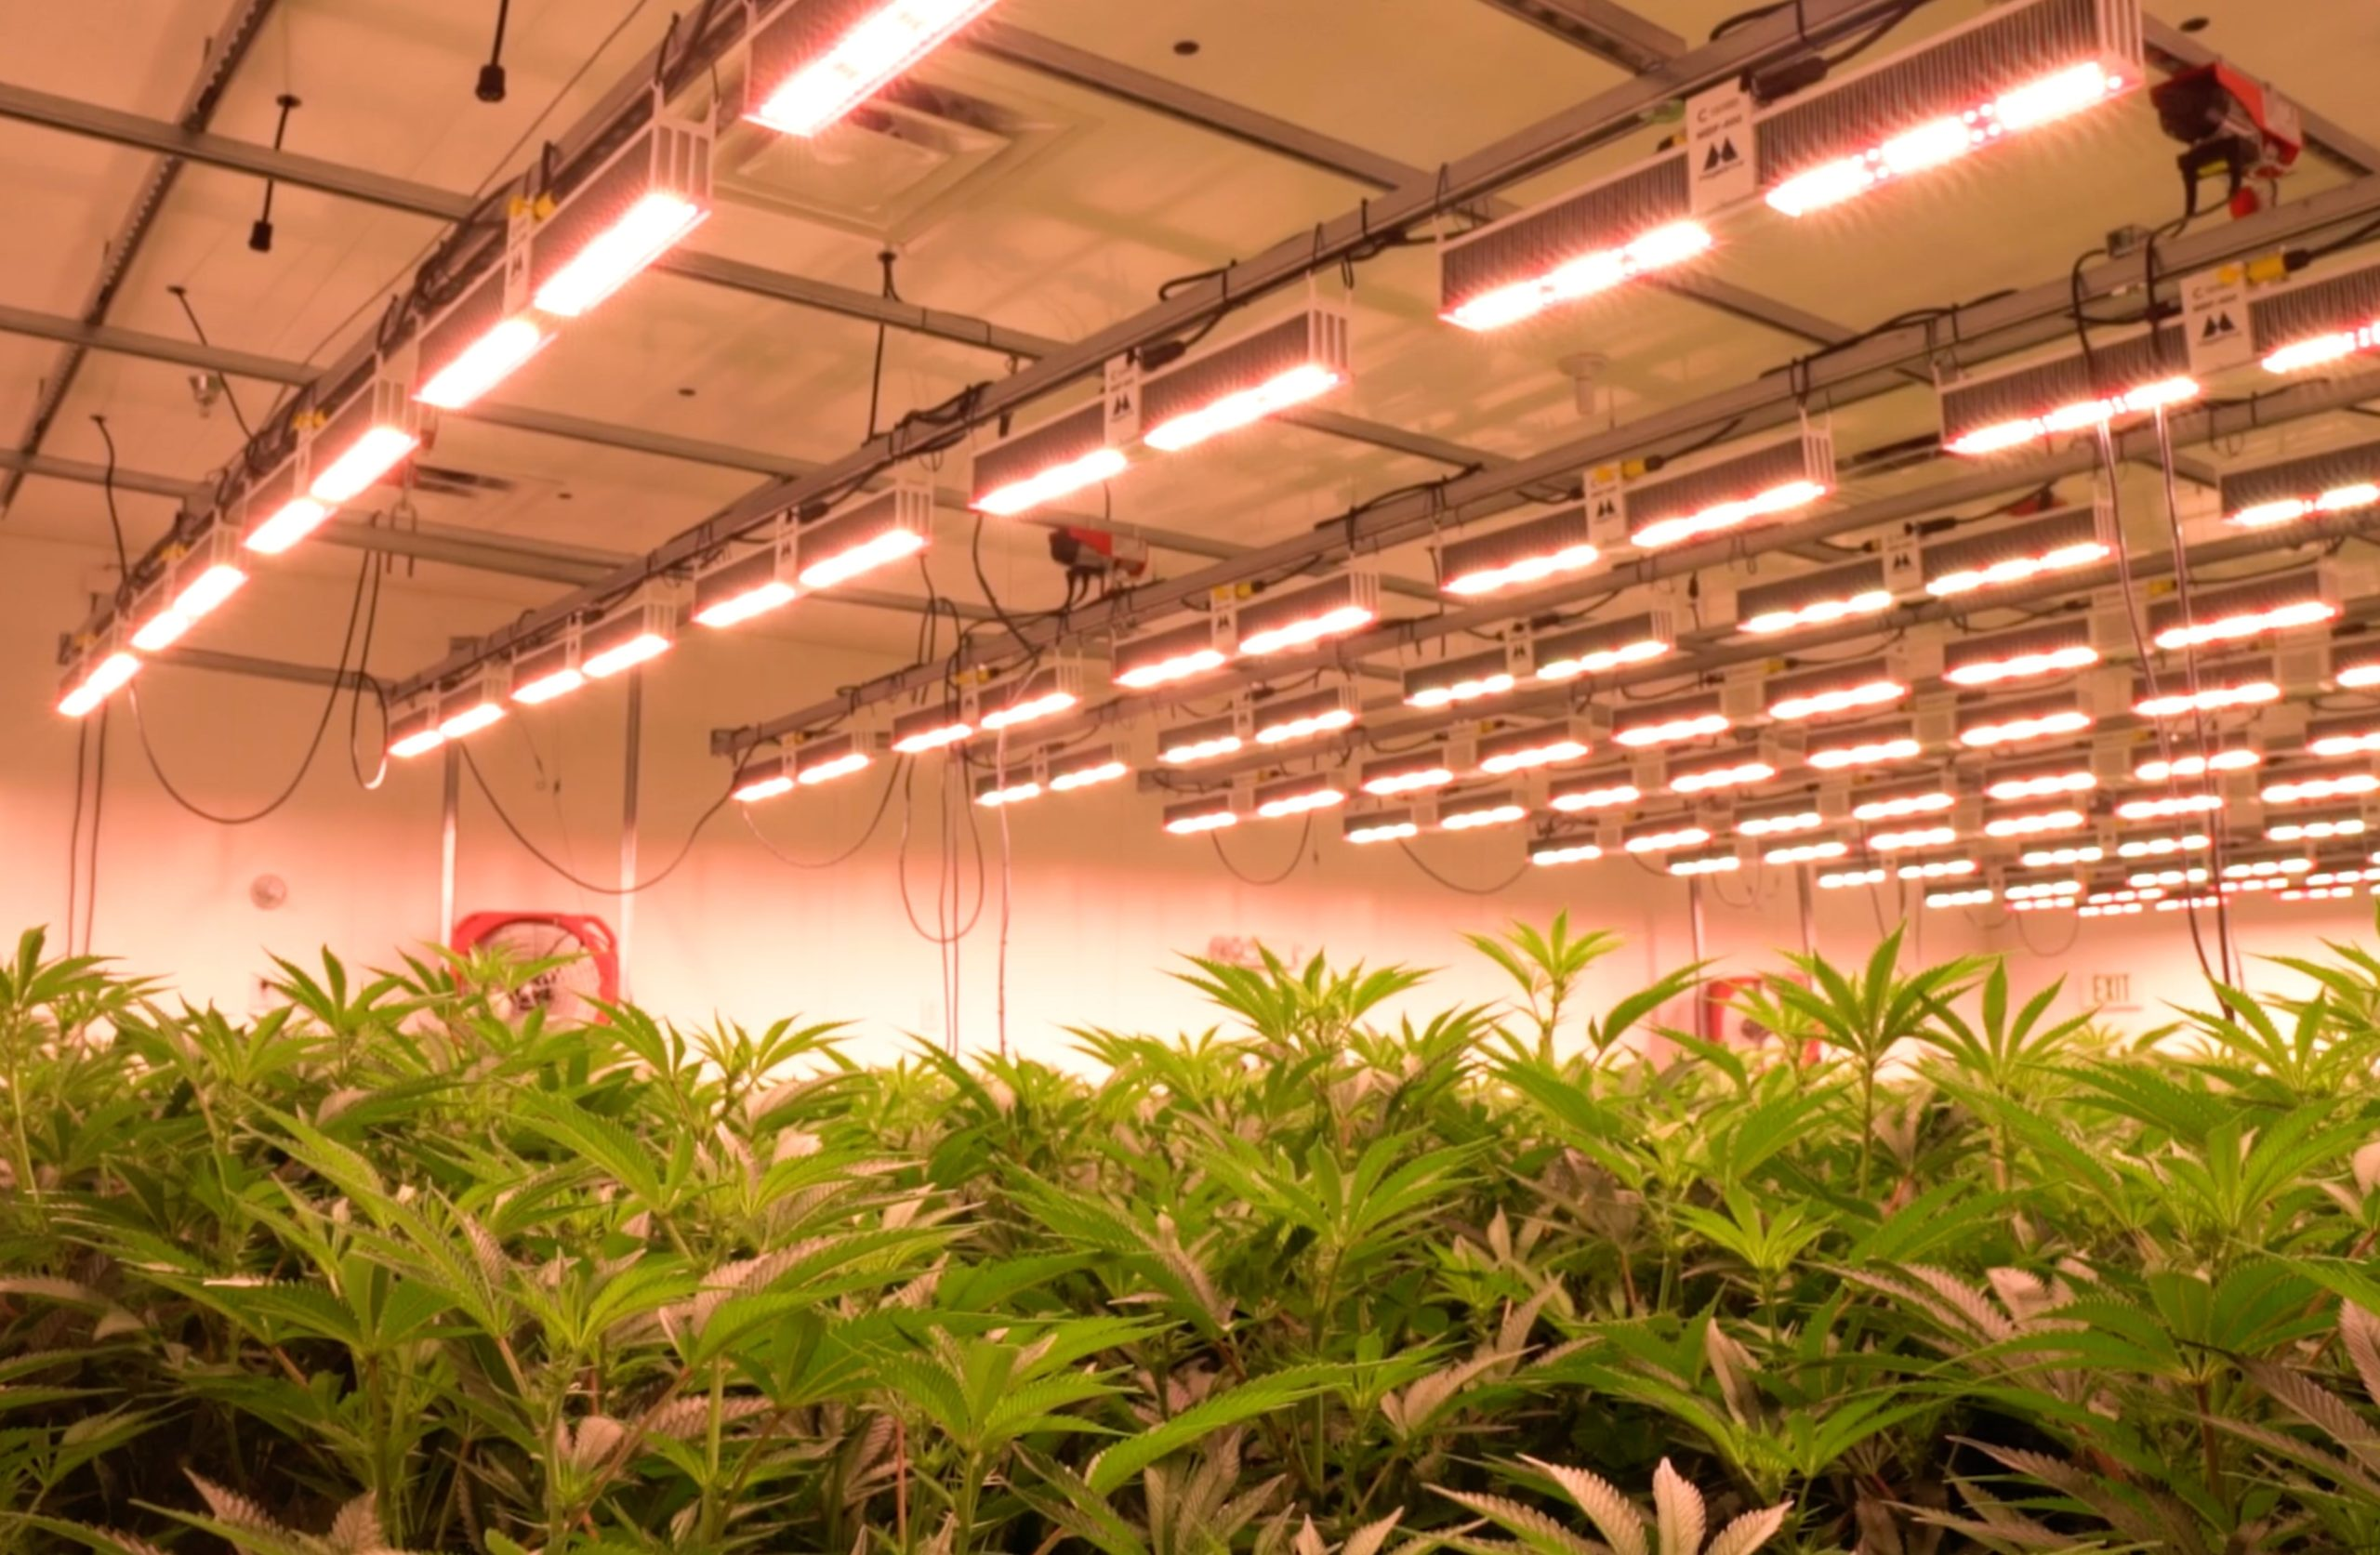 Grow Ohio - Testing Our LEDs Against The Competition